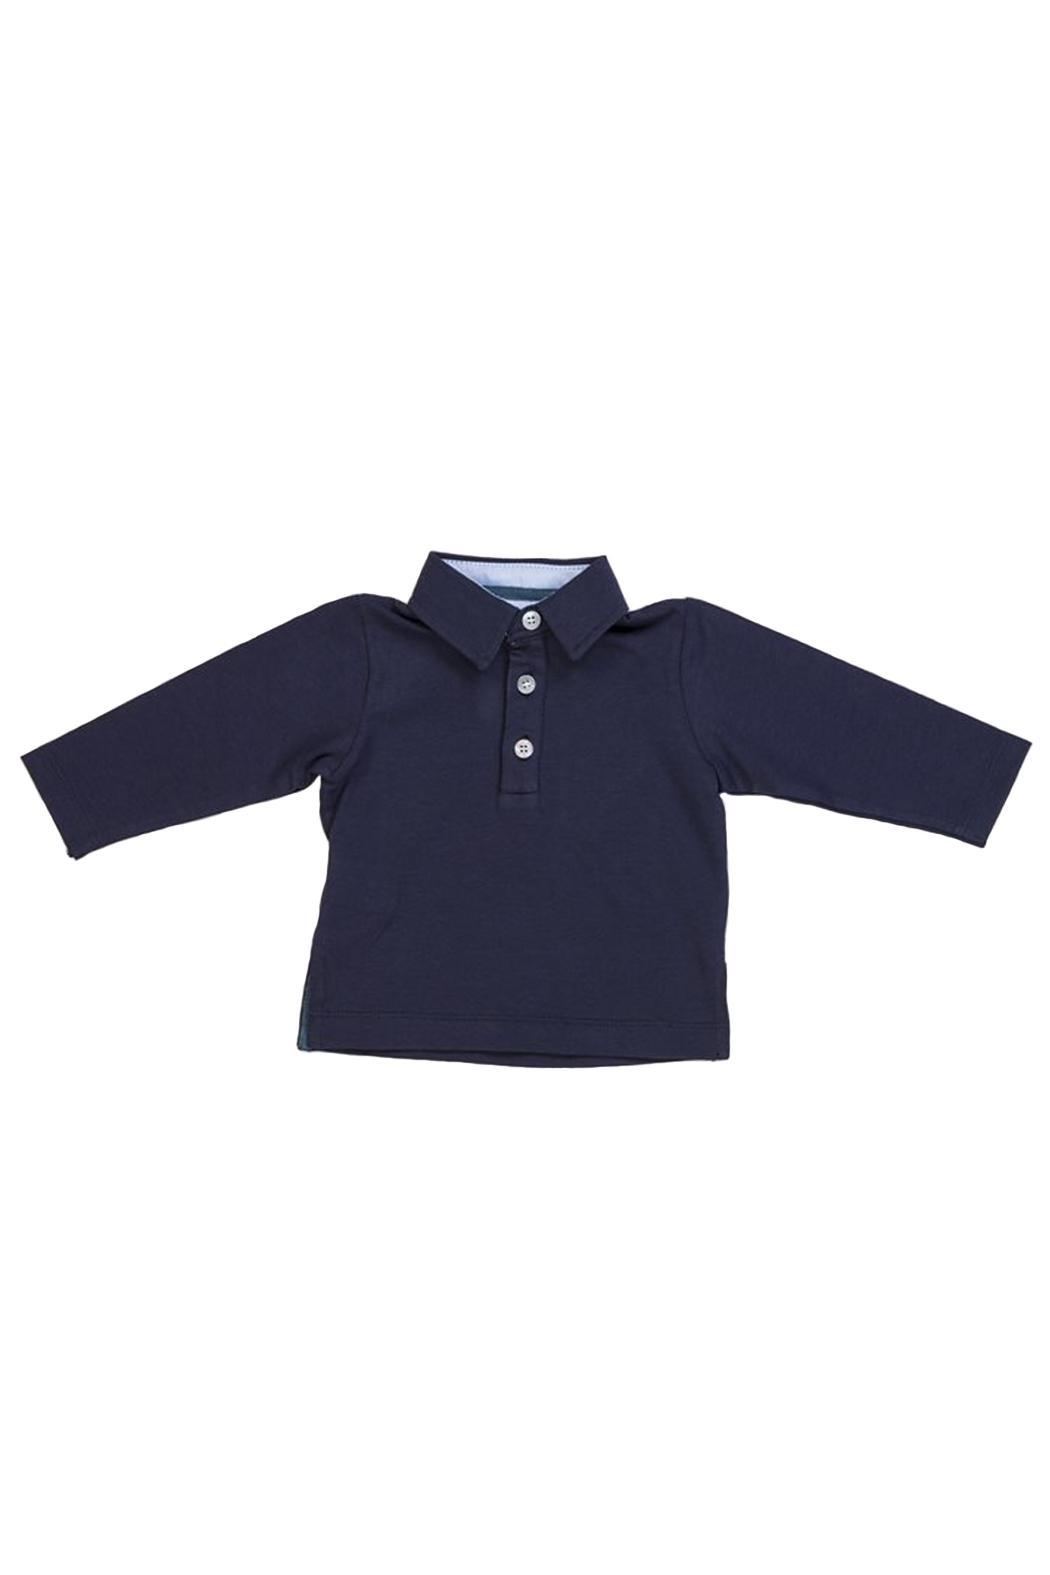 Malvi & Co. Navy Rugby Shirt. - Front Cropped Image